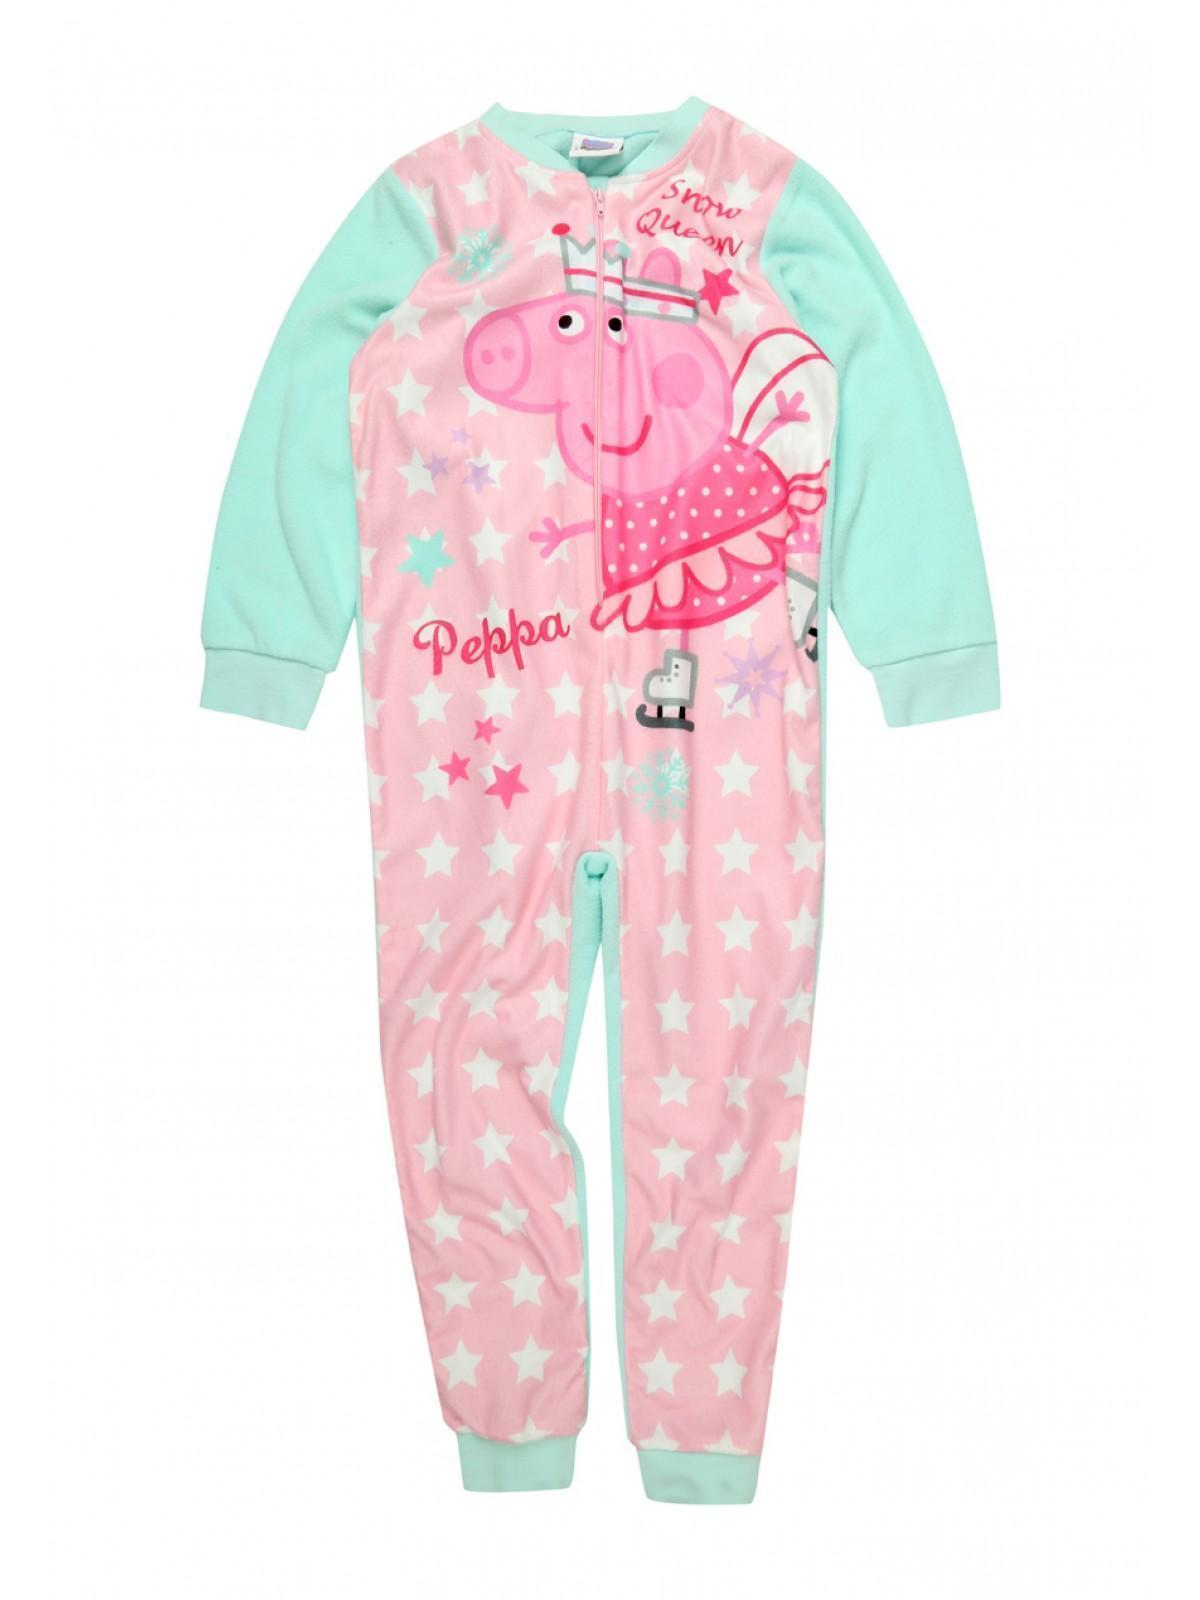 b651c79dce0ec Home; Younger Girls Peppa Pig Onesie. Back. PreviousNext